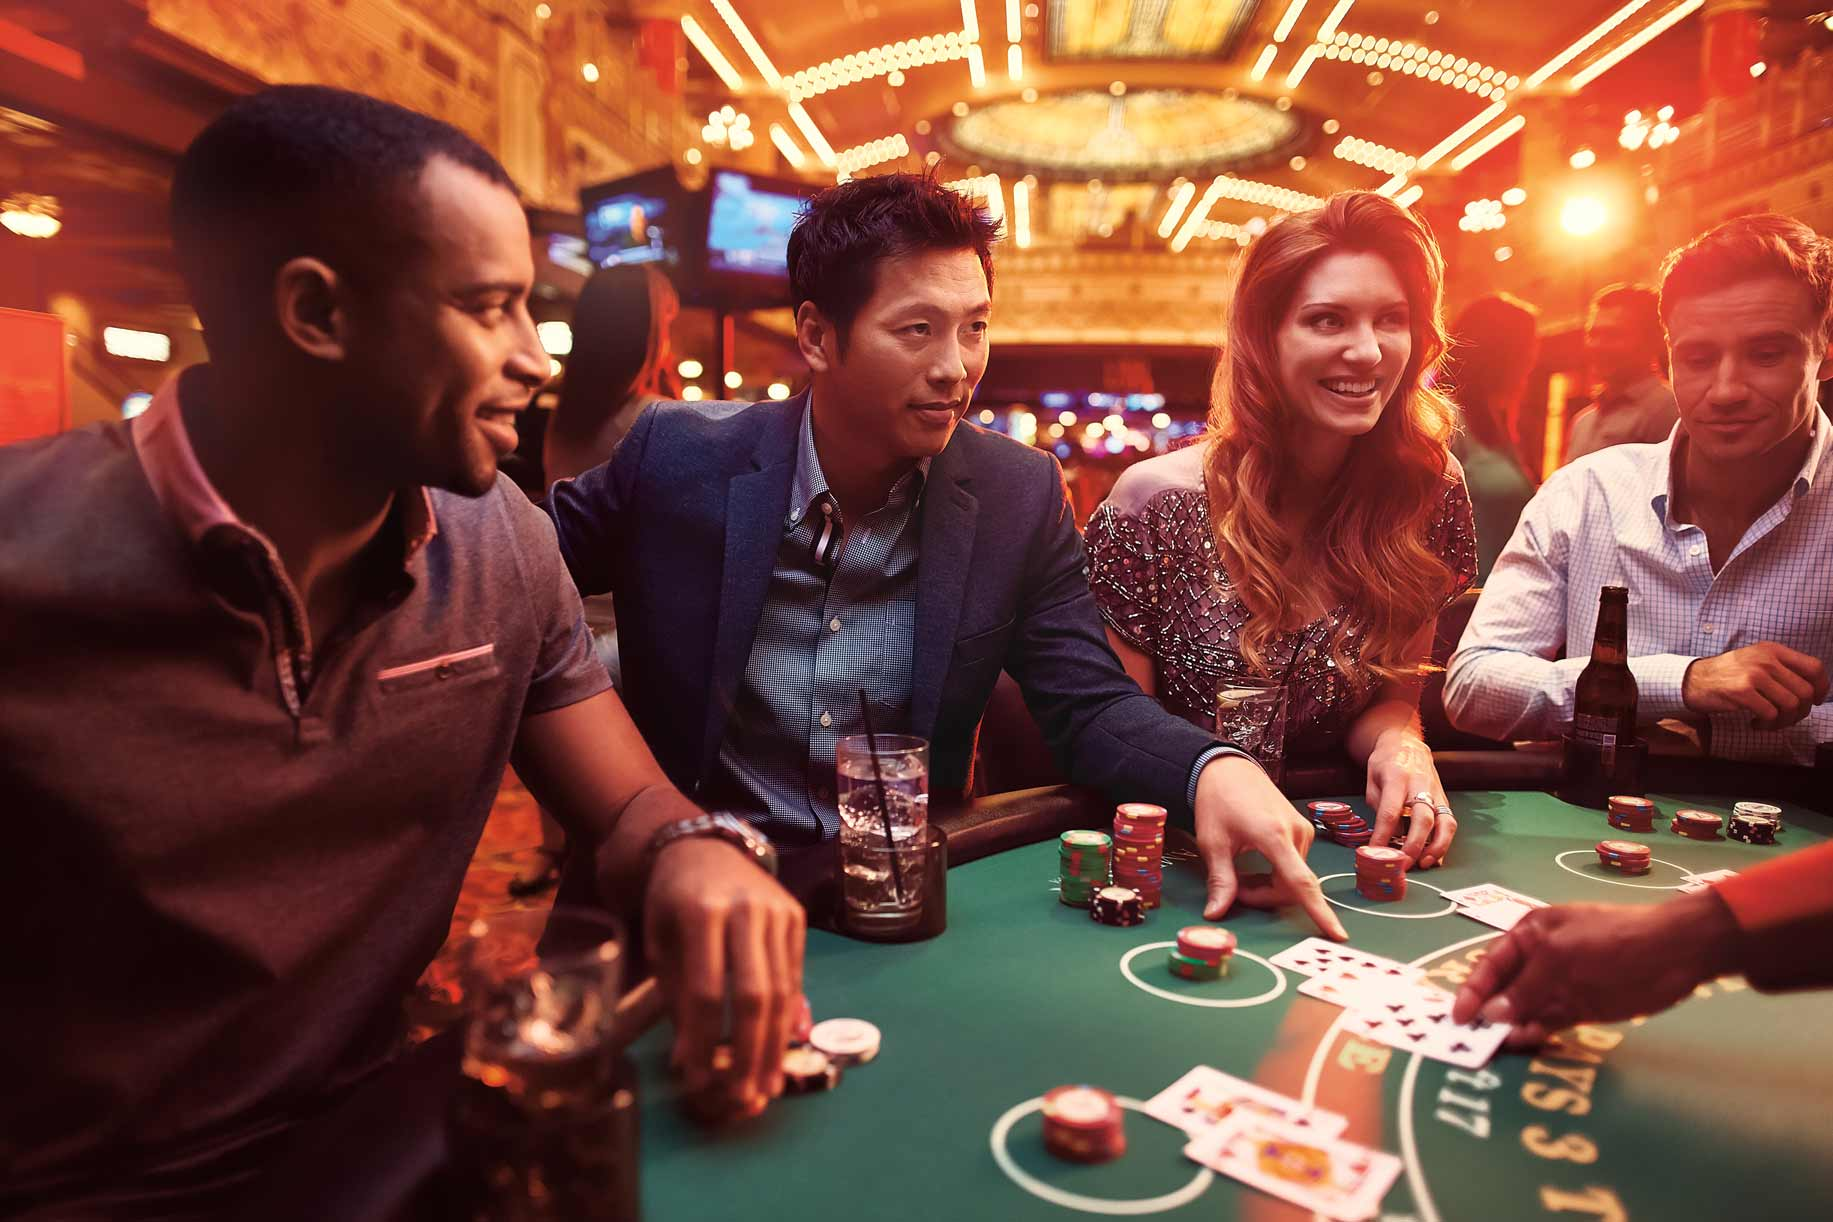 Apply For Dice Online For Real Money And Level Up In The Online Gambling